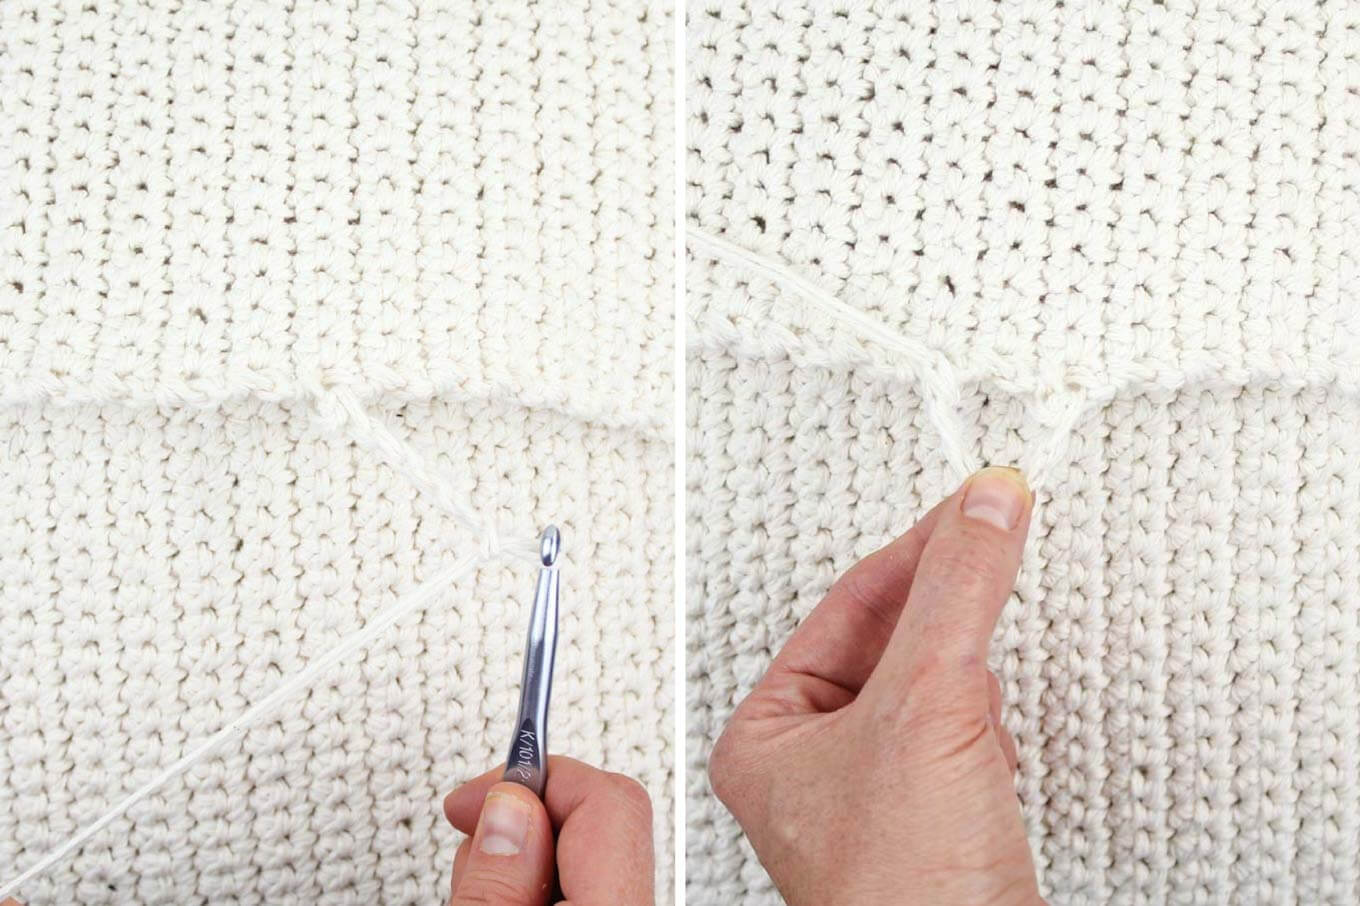 How to make crochet button loops to close a pillow.